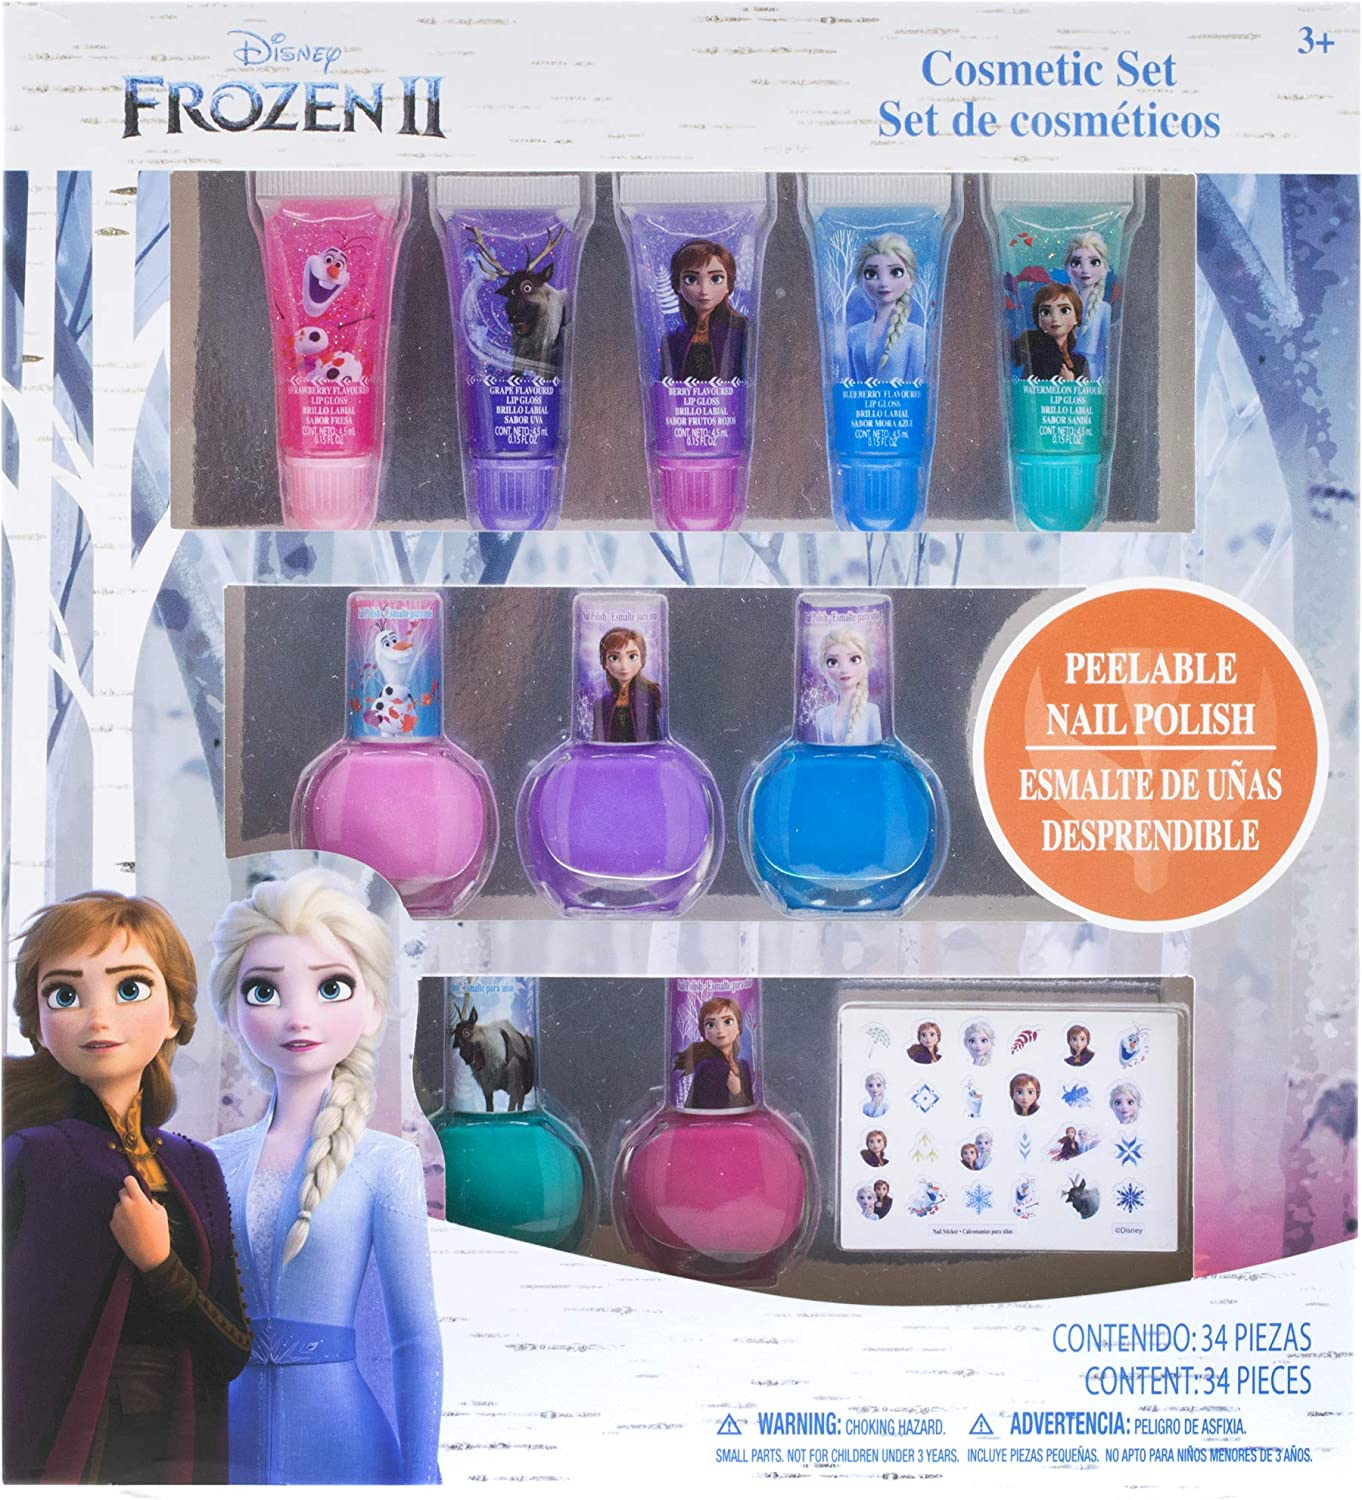 Townley Girl Disney Frozen 2 Super Sparkly Cosmetic Set with Lip Gloss  Nail Polish and Nail Stickers - 11 Pack